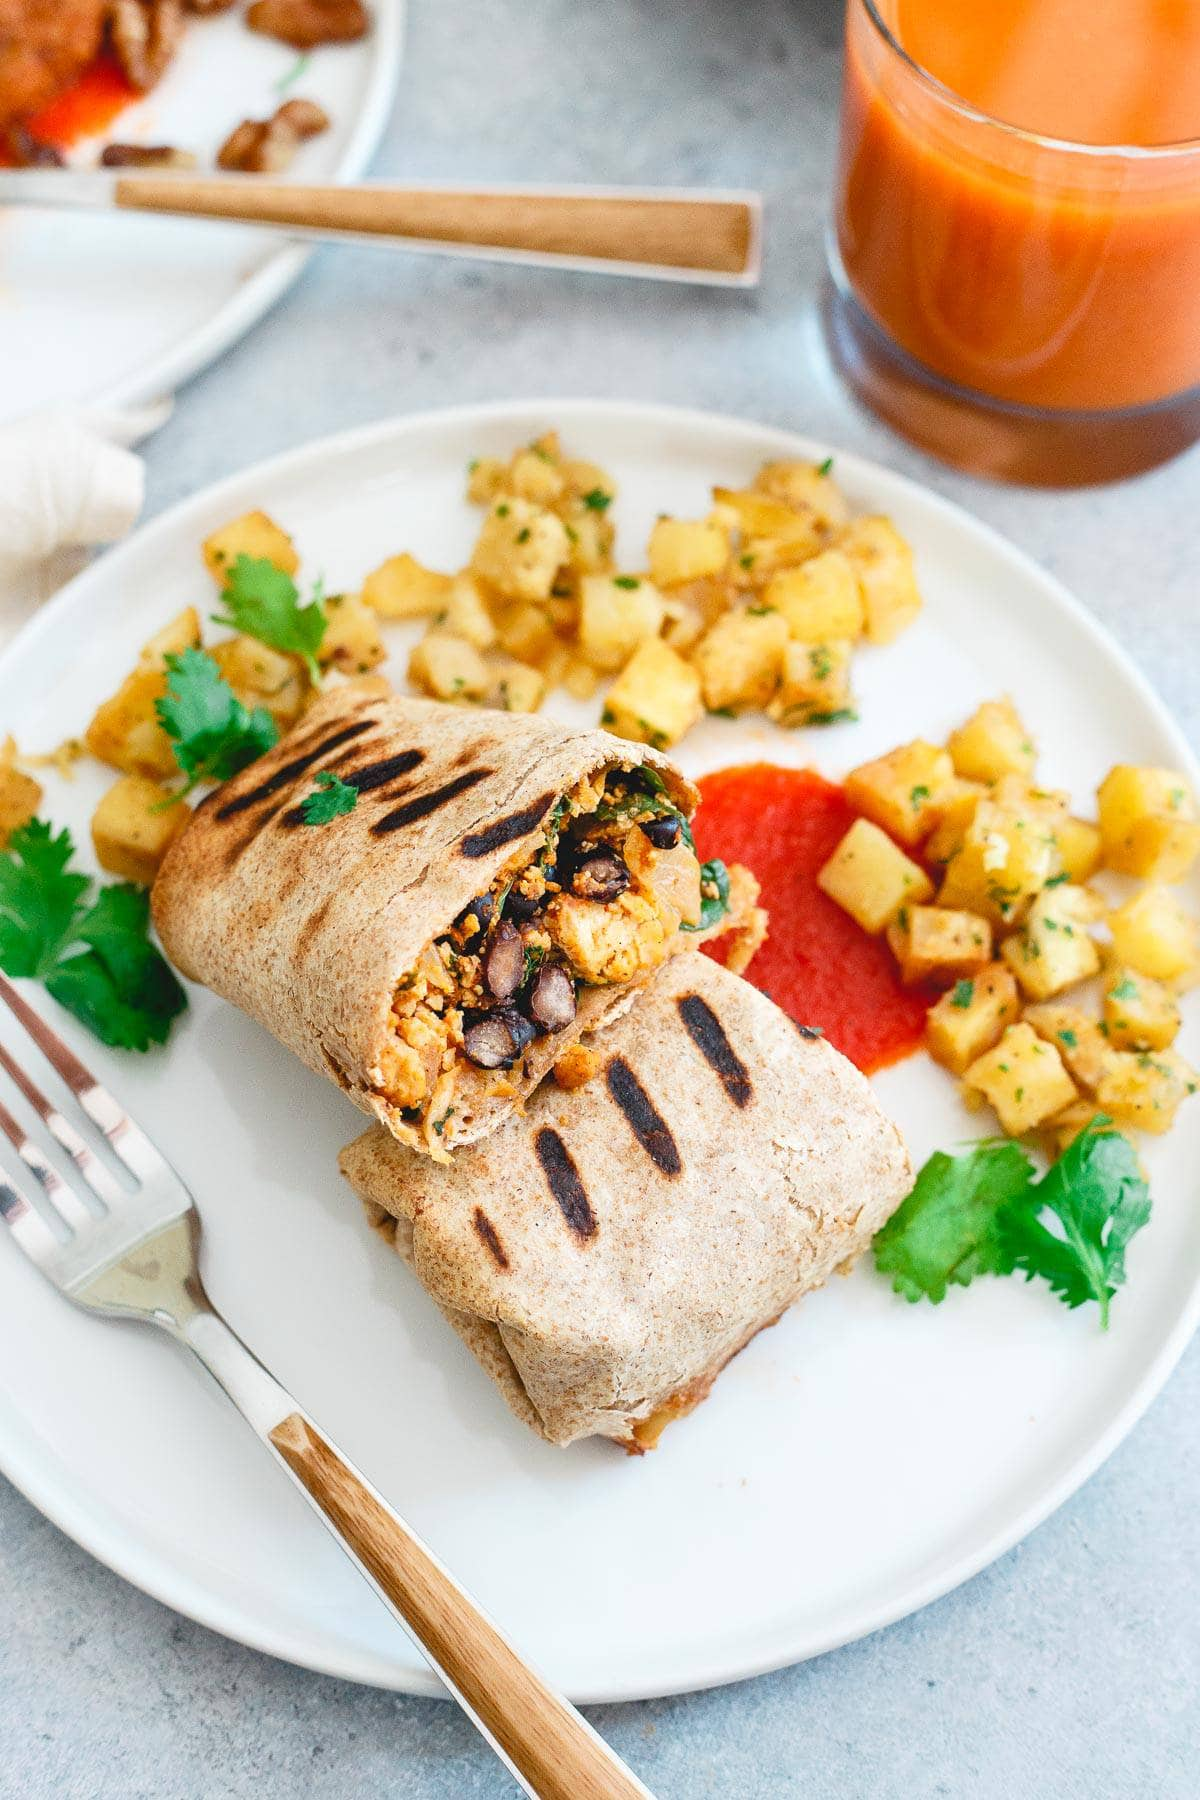 Veestro's breakfast burrito is a delicious, filling blend of potatoes, black beans and tofu and a great option for a plant based breakfast.